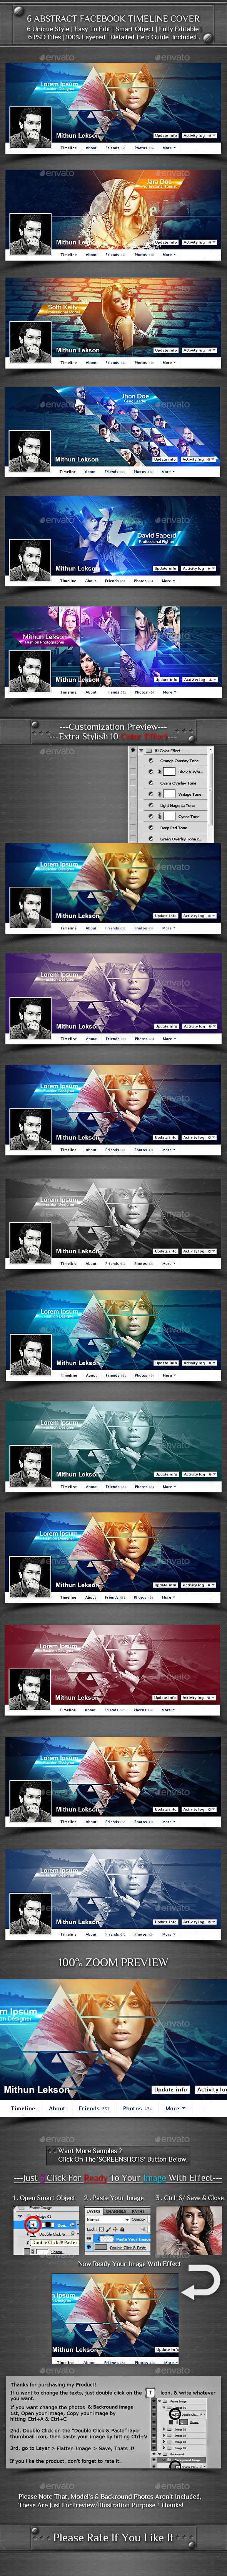 6 Abstract Facebook Timeline Cover Template PSD #design Download: http://graphicriver.net/item/6-abstract-facebook-timeline-cover/14401065?ref=ksioks